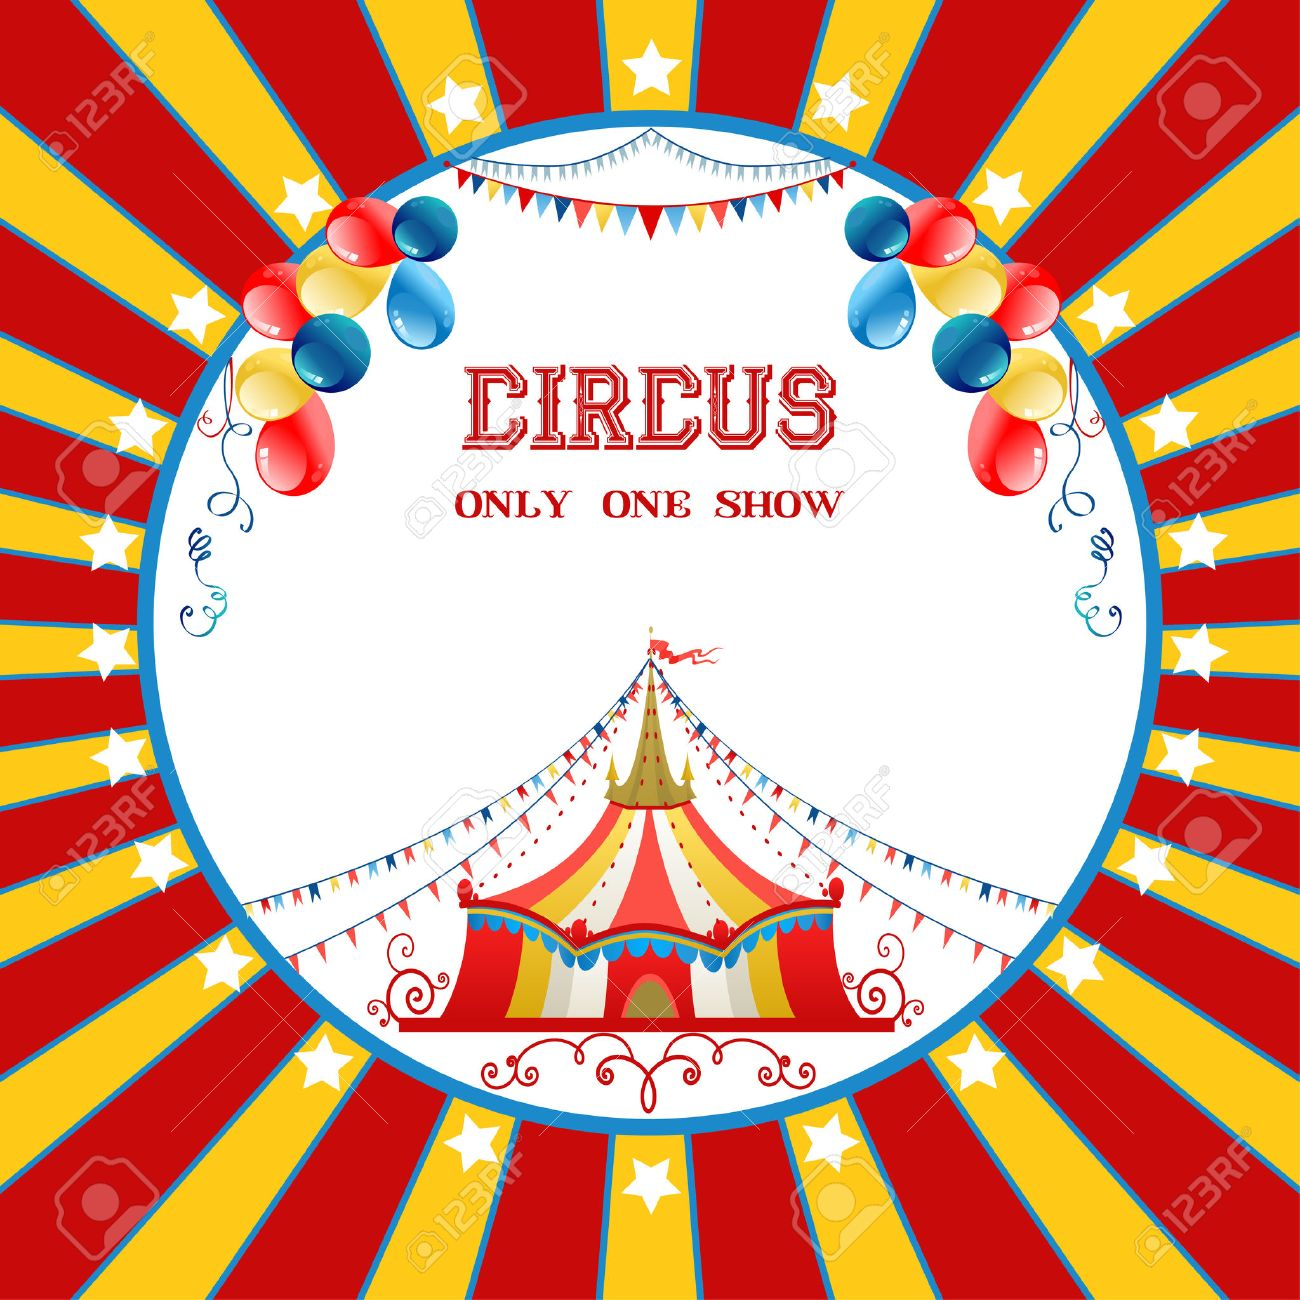 Circus poster with balloons - 41899890